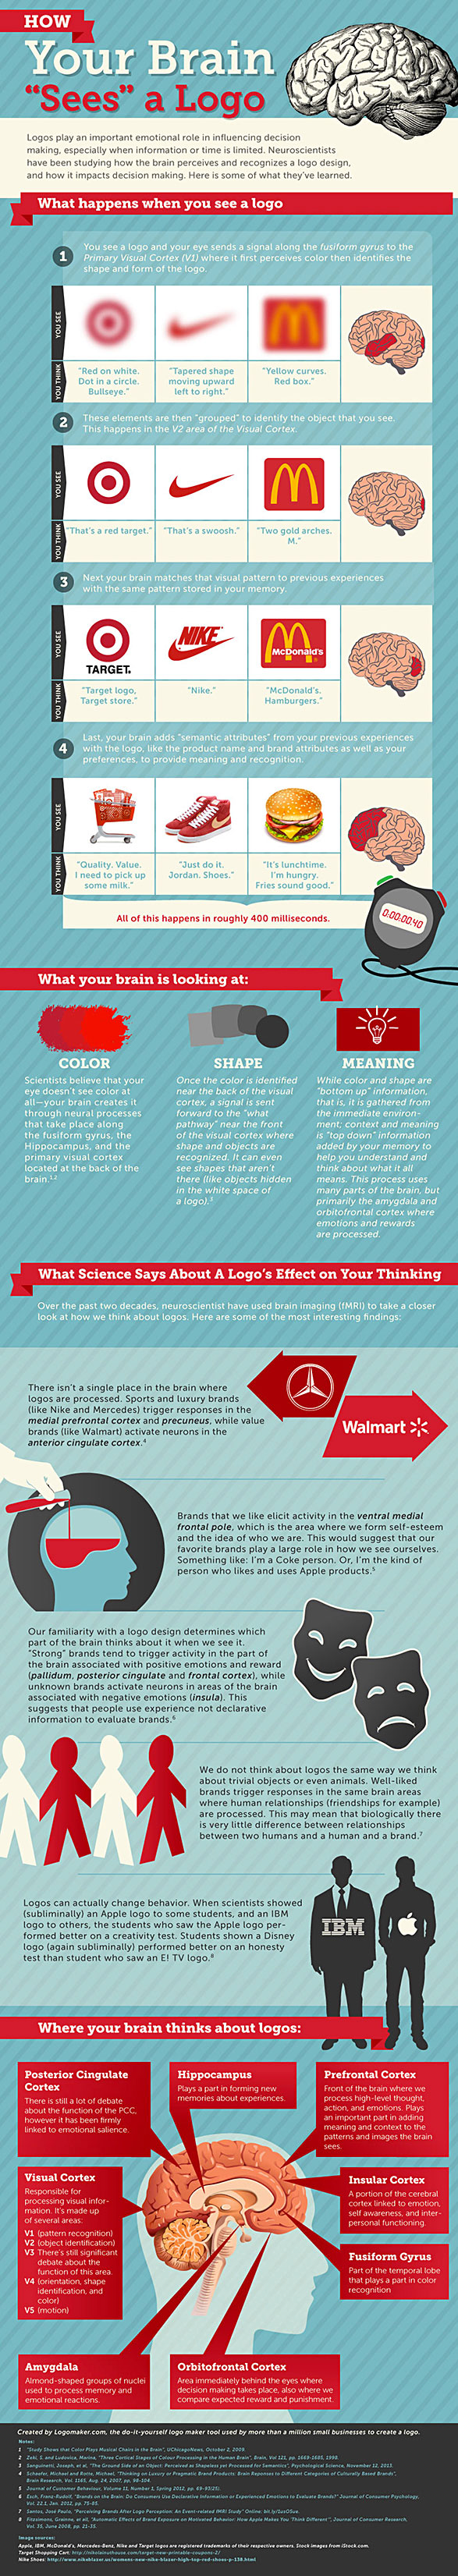 Infographic on how your brain breaks down a logo